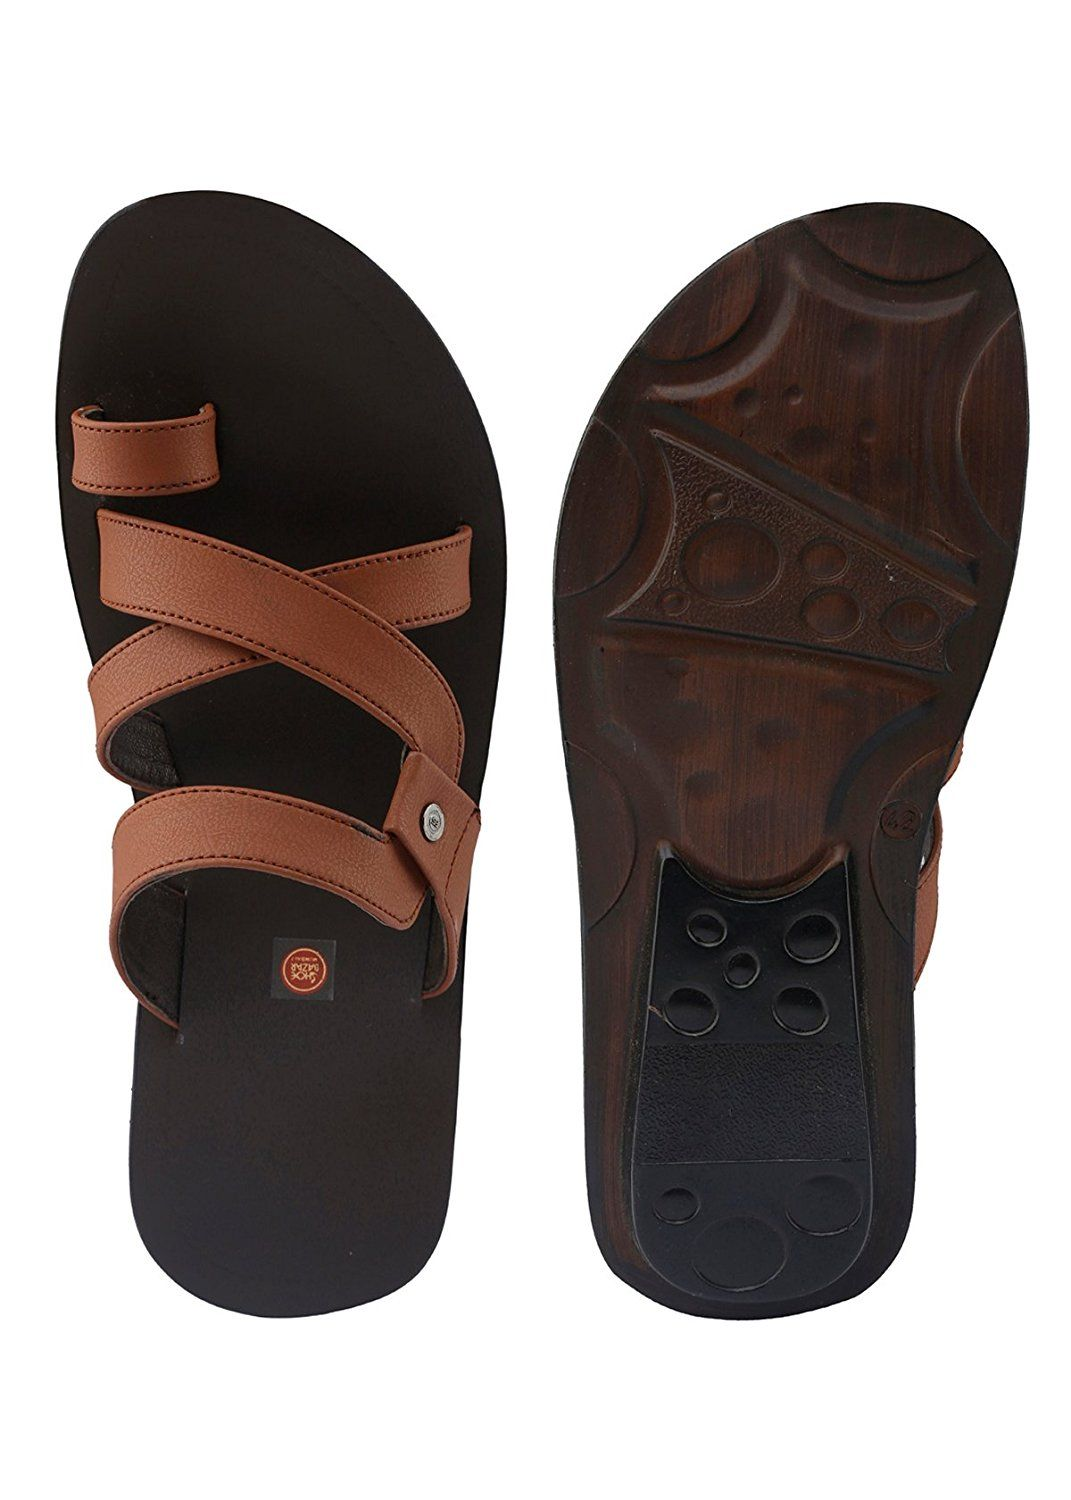 8f9ceabb7 Shoe Bazar Tan Casual Sandals: Buy Online at Low Prices in India - Amazon.in